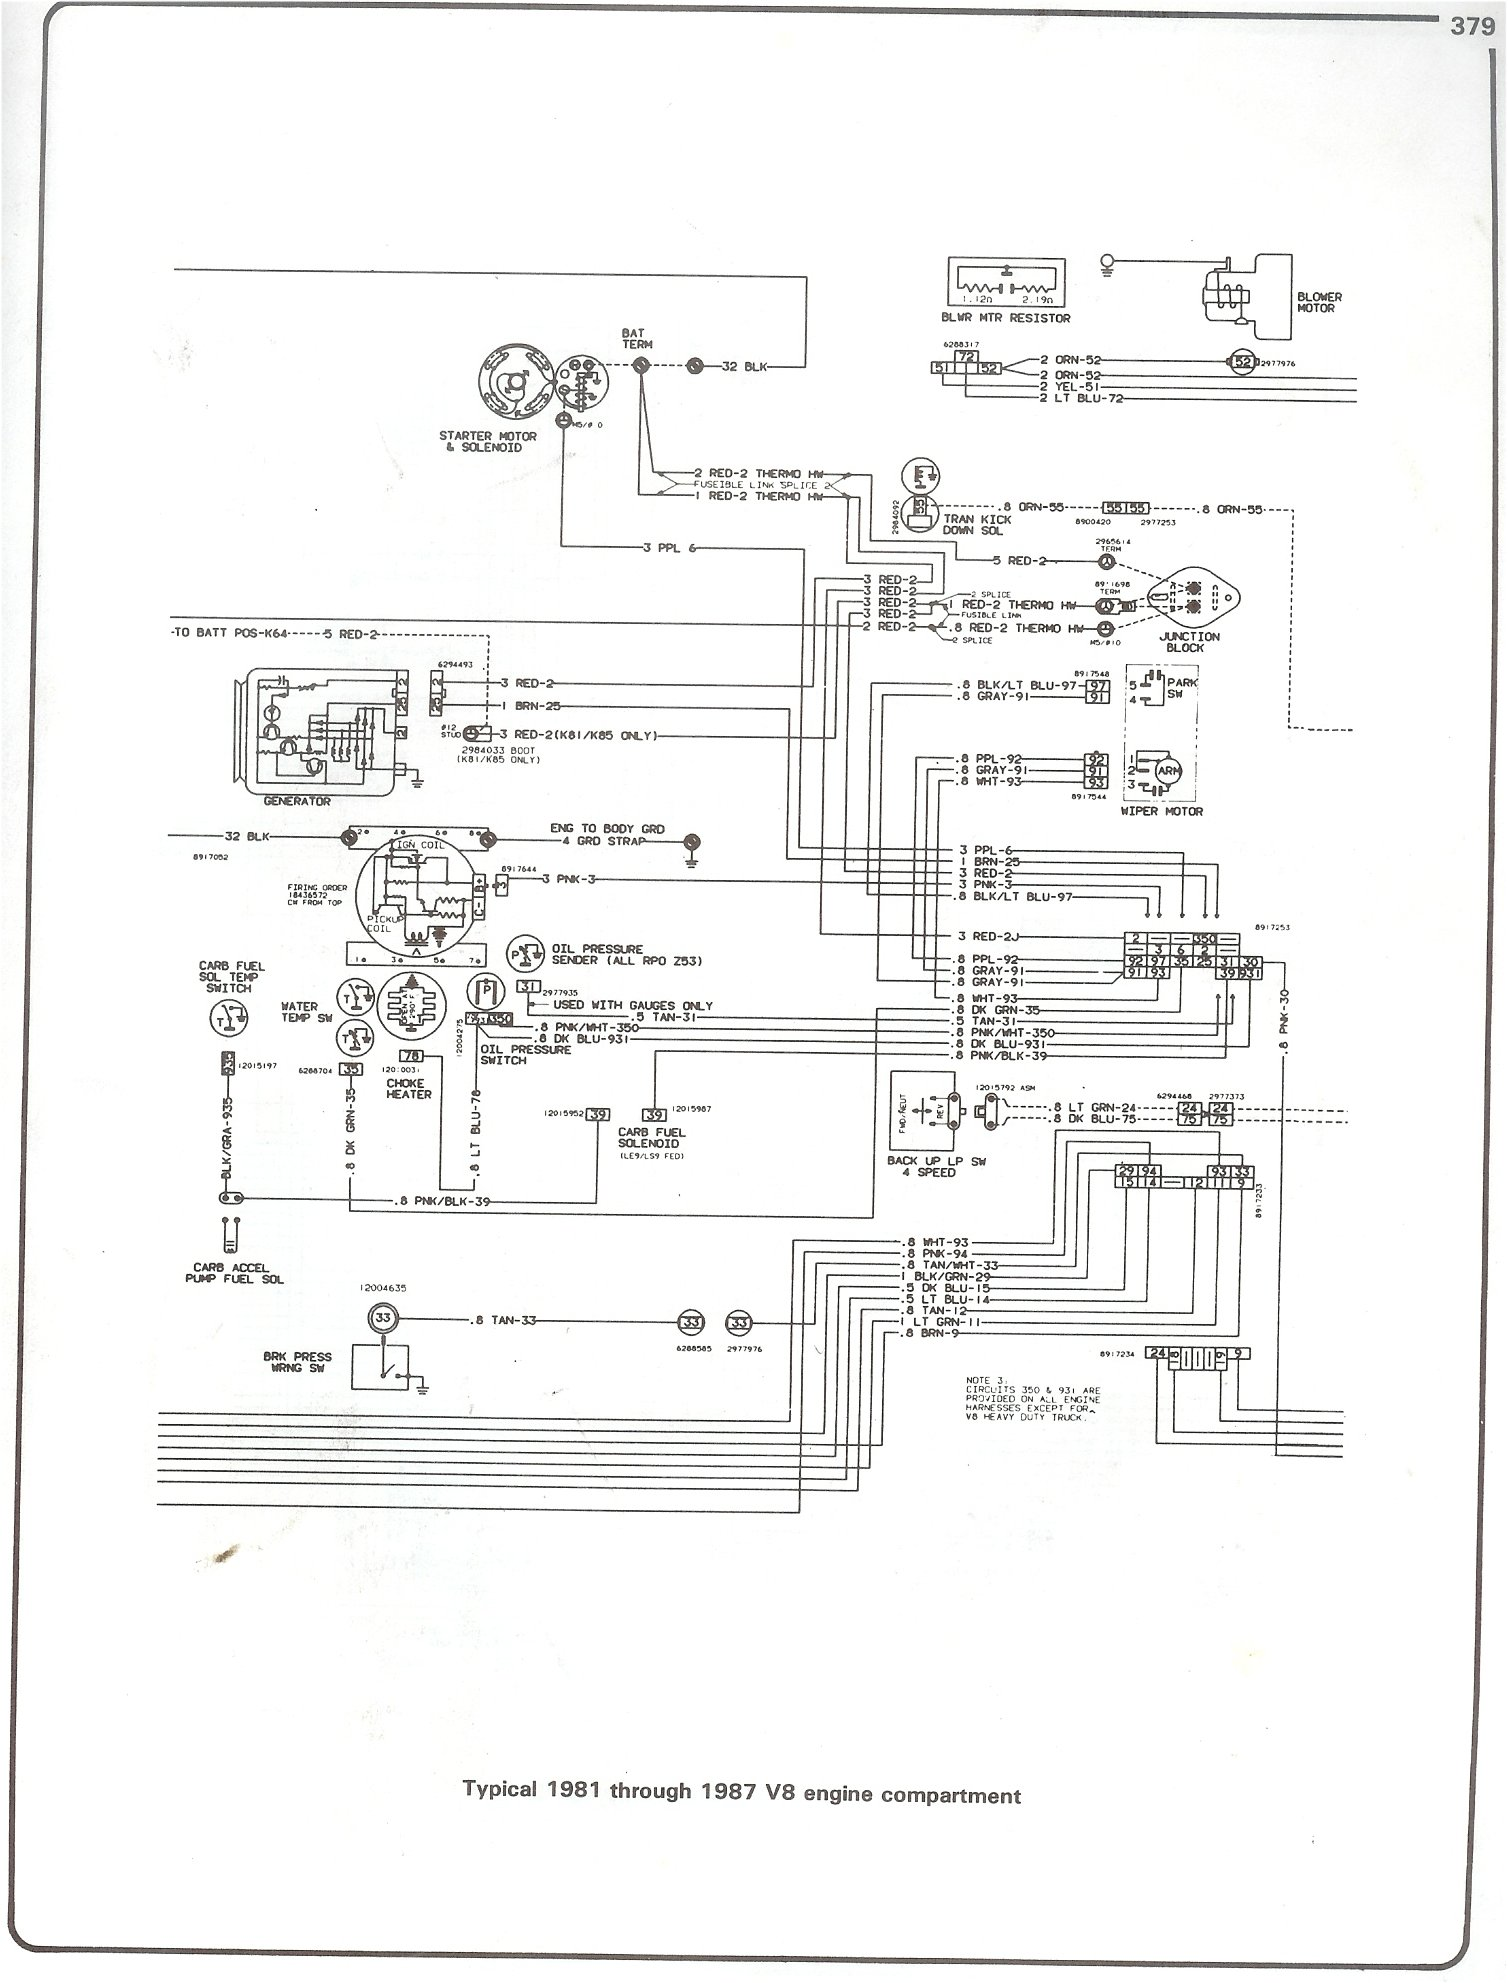 81 87_V8_engine complete 73 87 wiring diagrams  at fashall.co